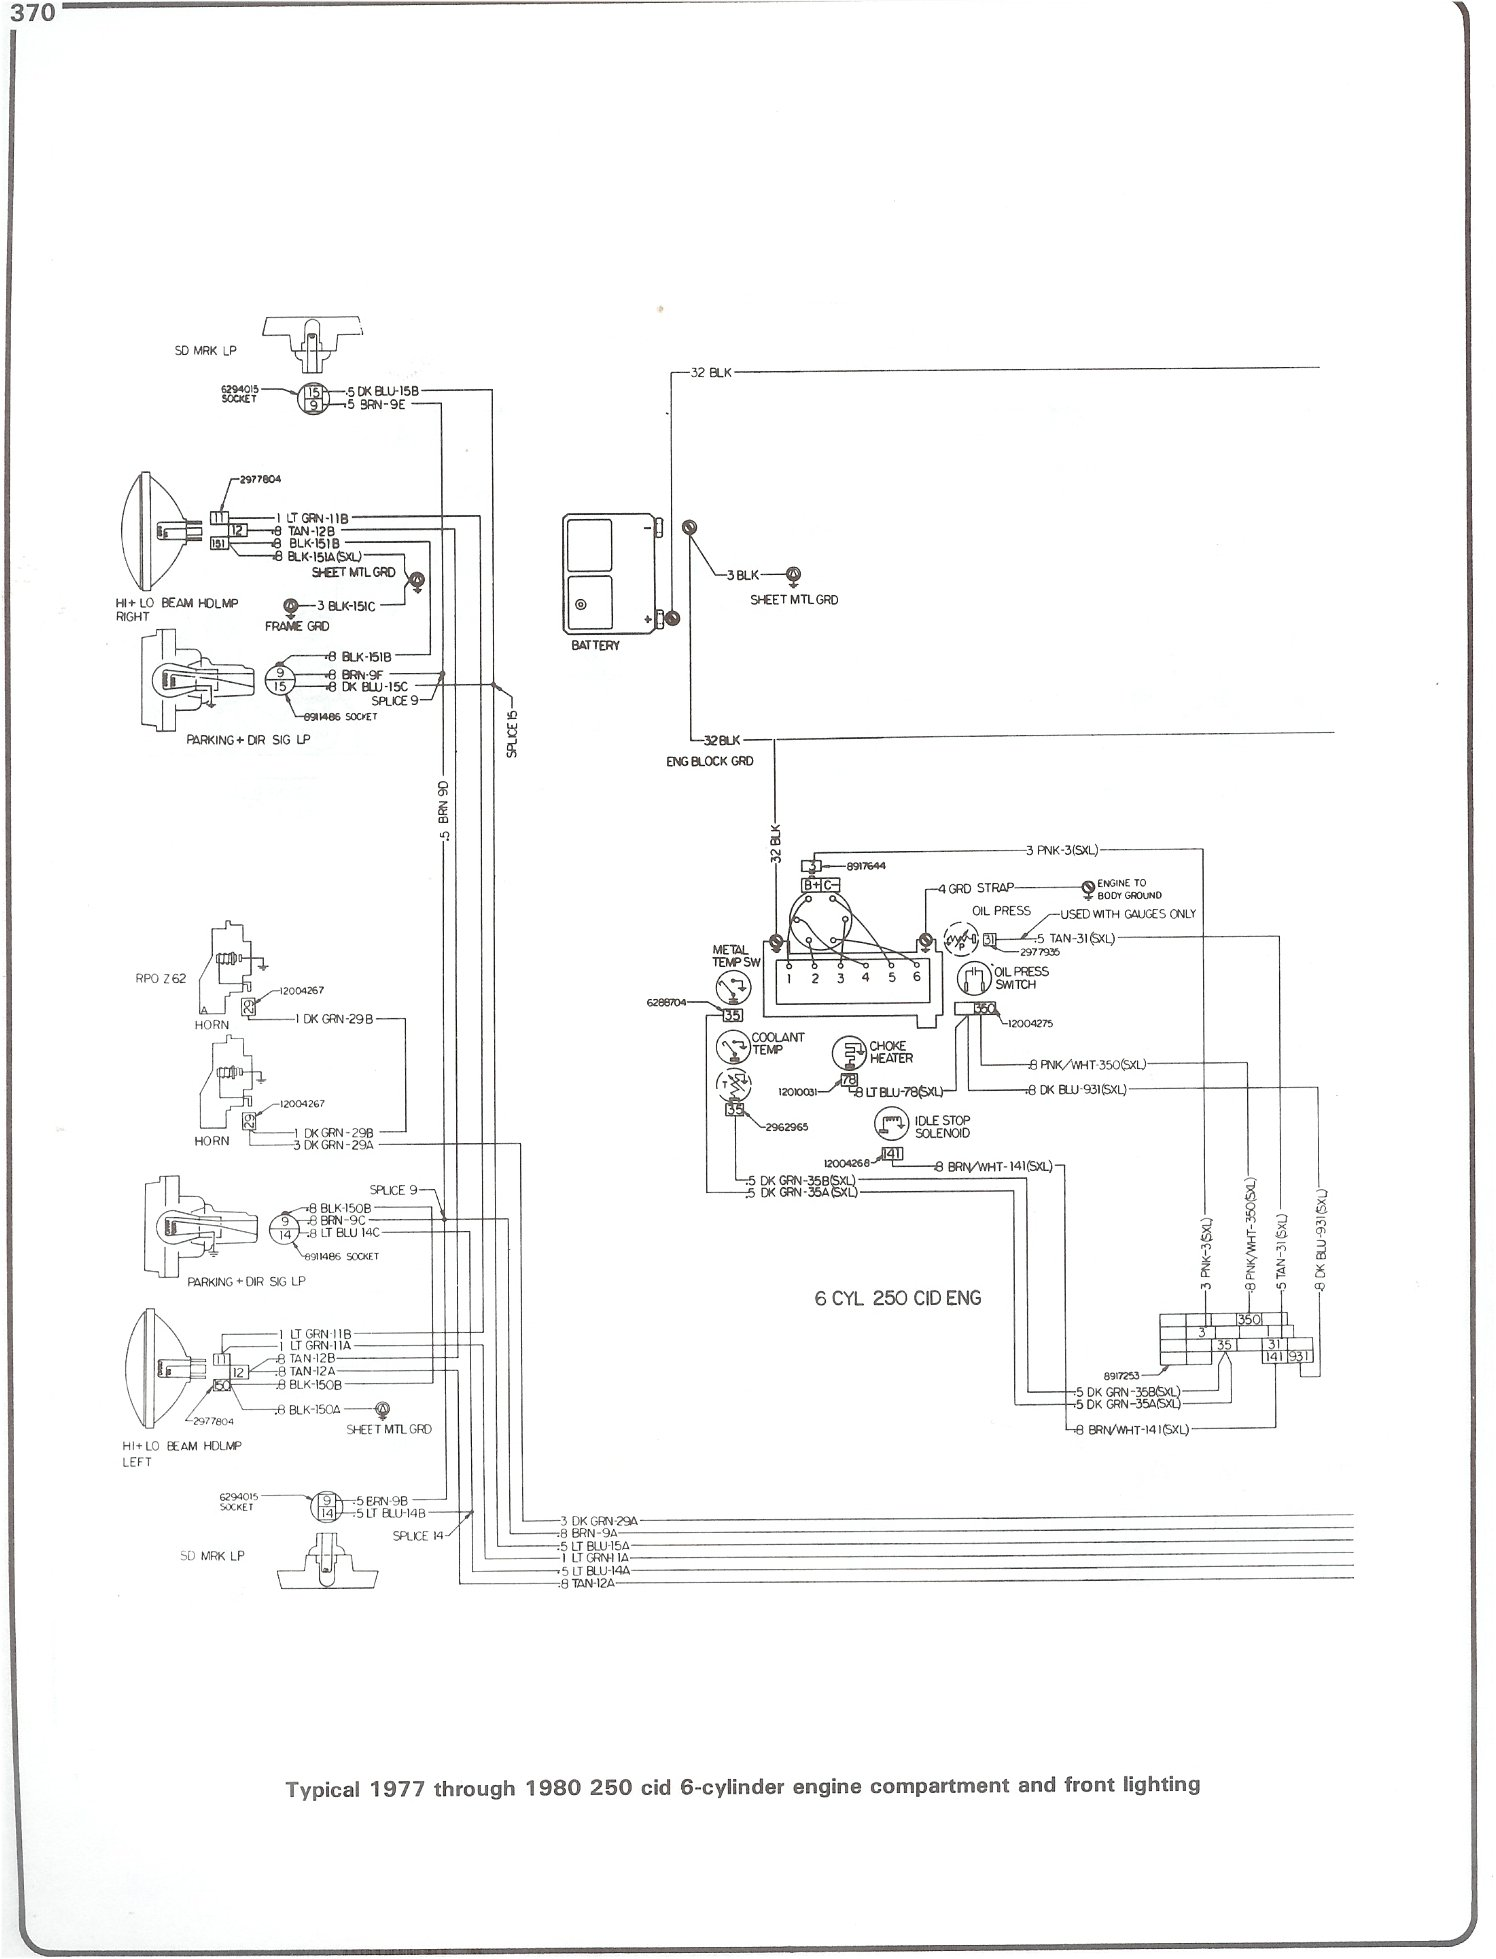 77 80_250_I6_eng_frt_light complete 73 87 wiring diagrams 2008 Chevy Silverado Wiring Diagram at panicattacktreatment.co